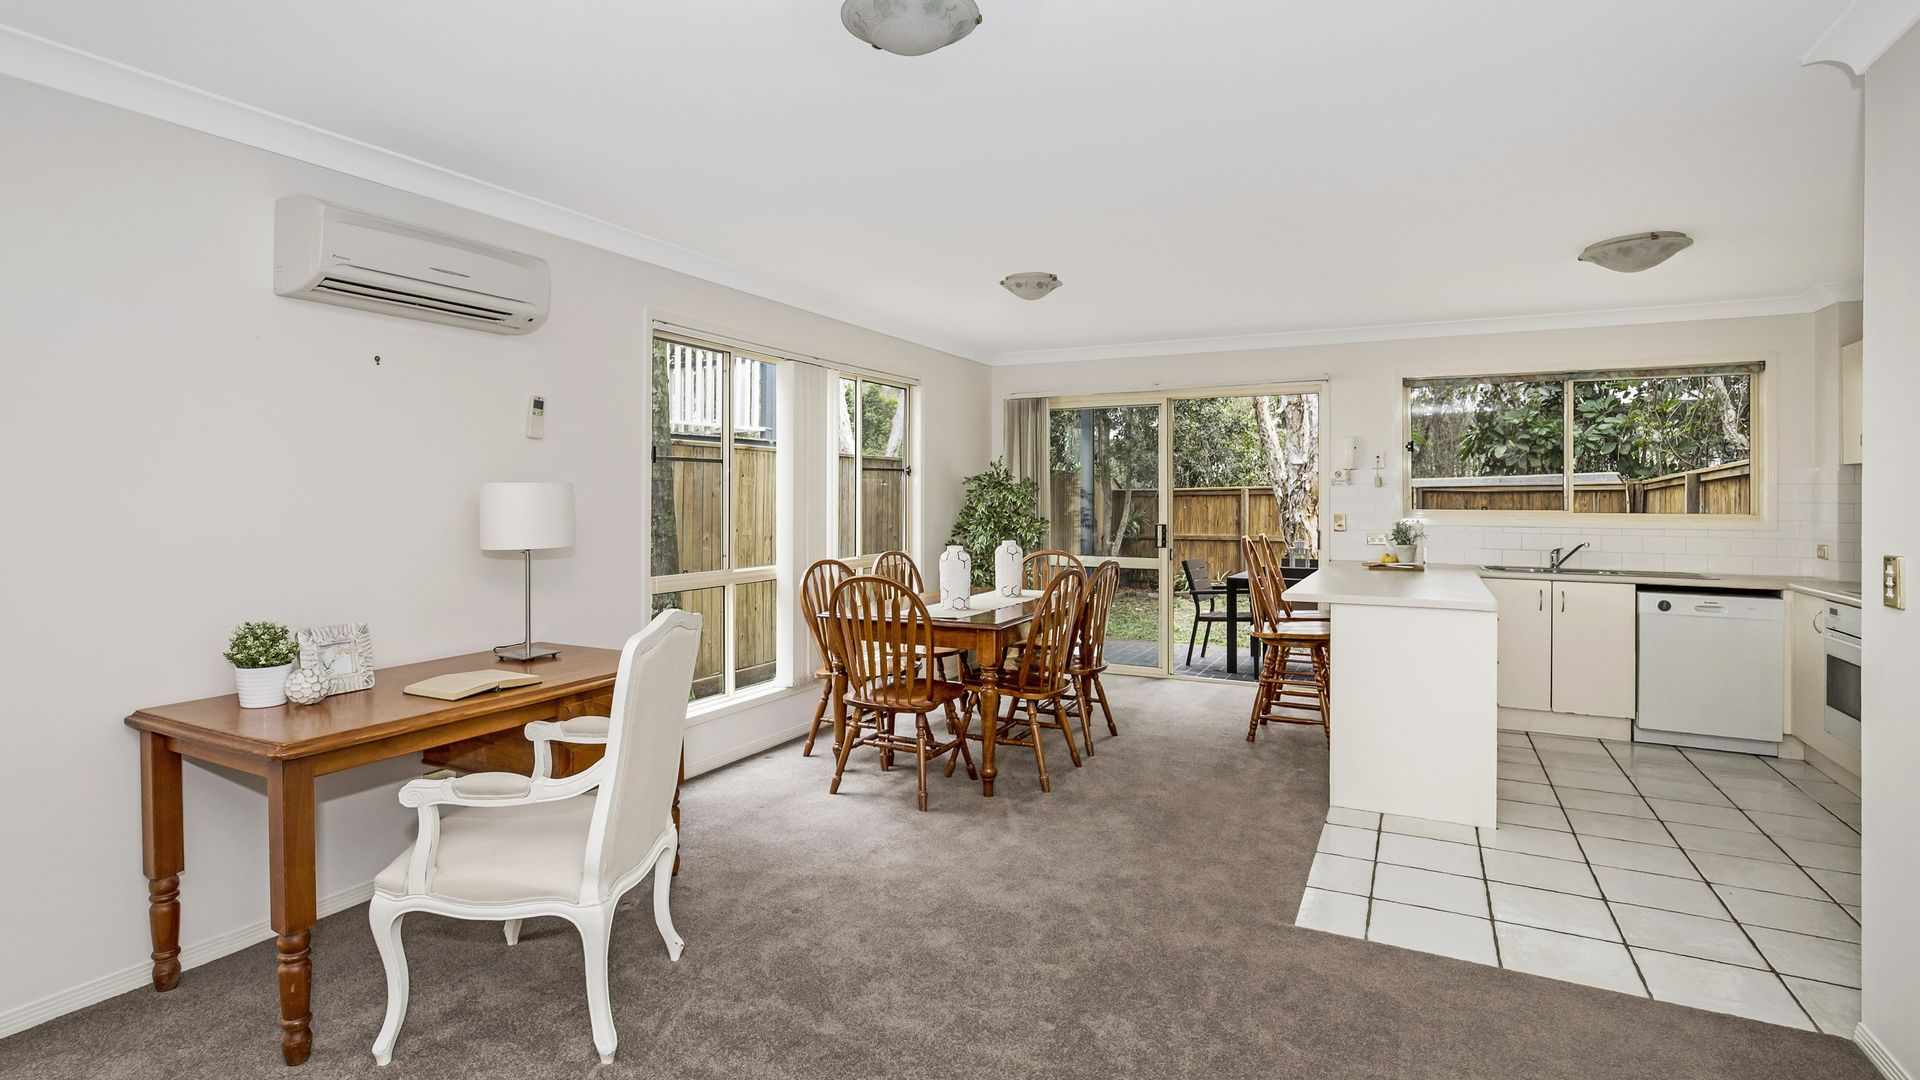 17/87 Russell Terrace, Indooroopilly QLD 4068, Image 1